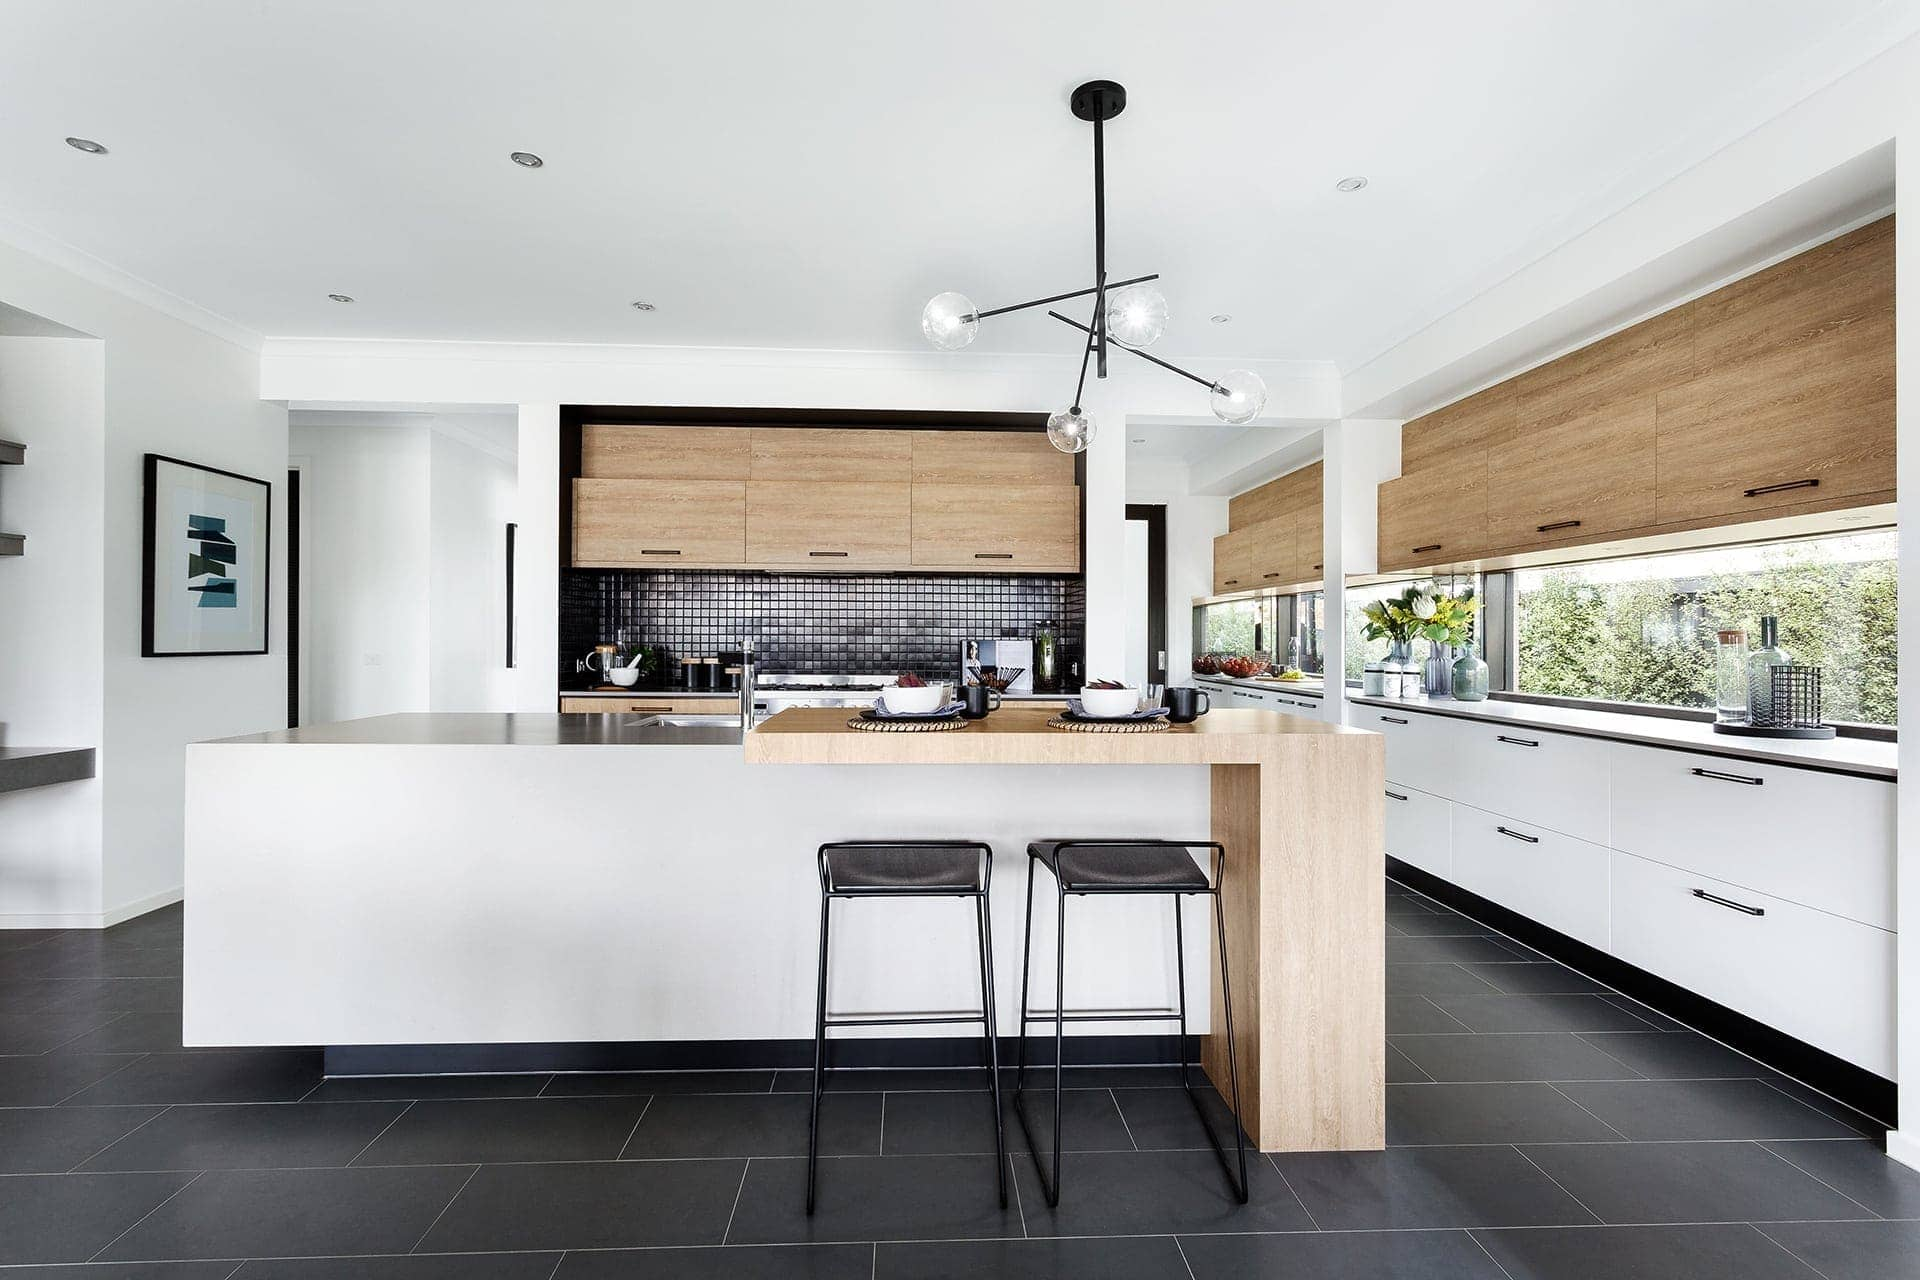 Modernist Black And White Kitchen With Shiny Black Splashback Tiles From  Metricon